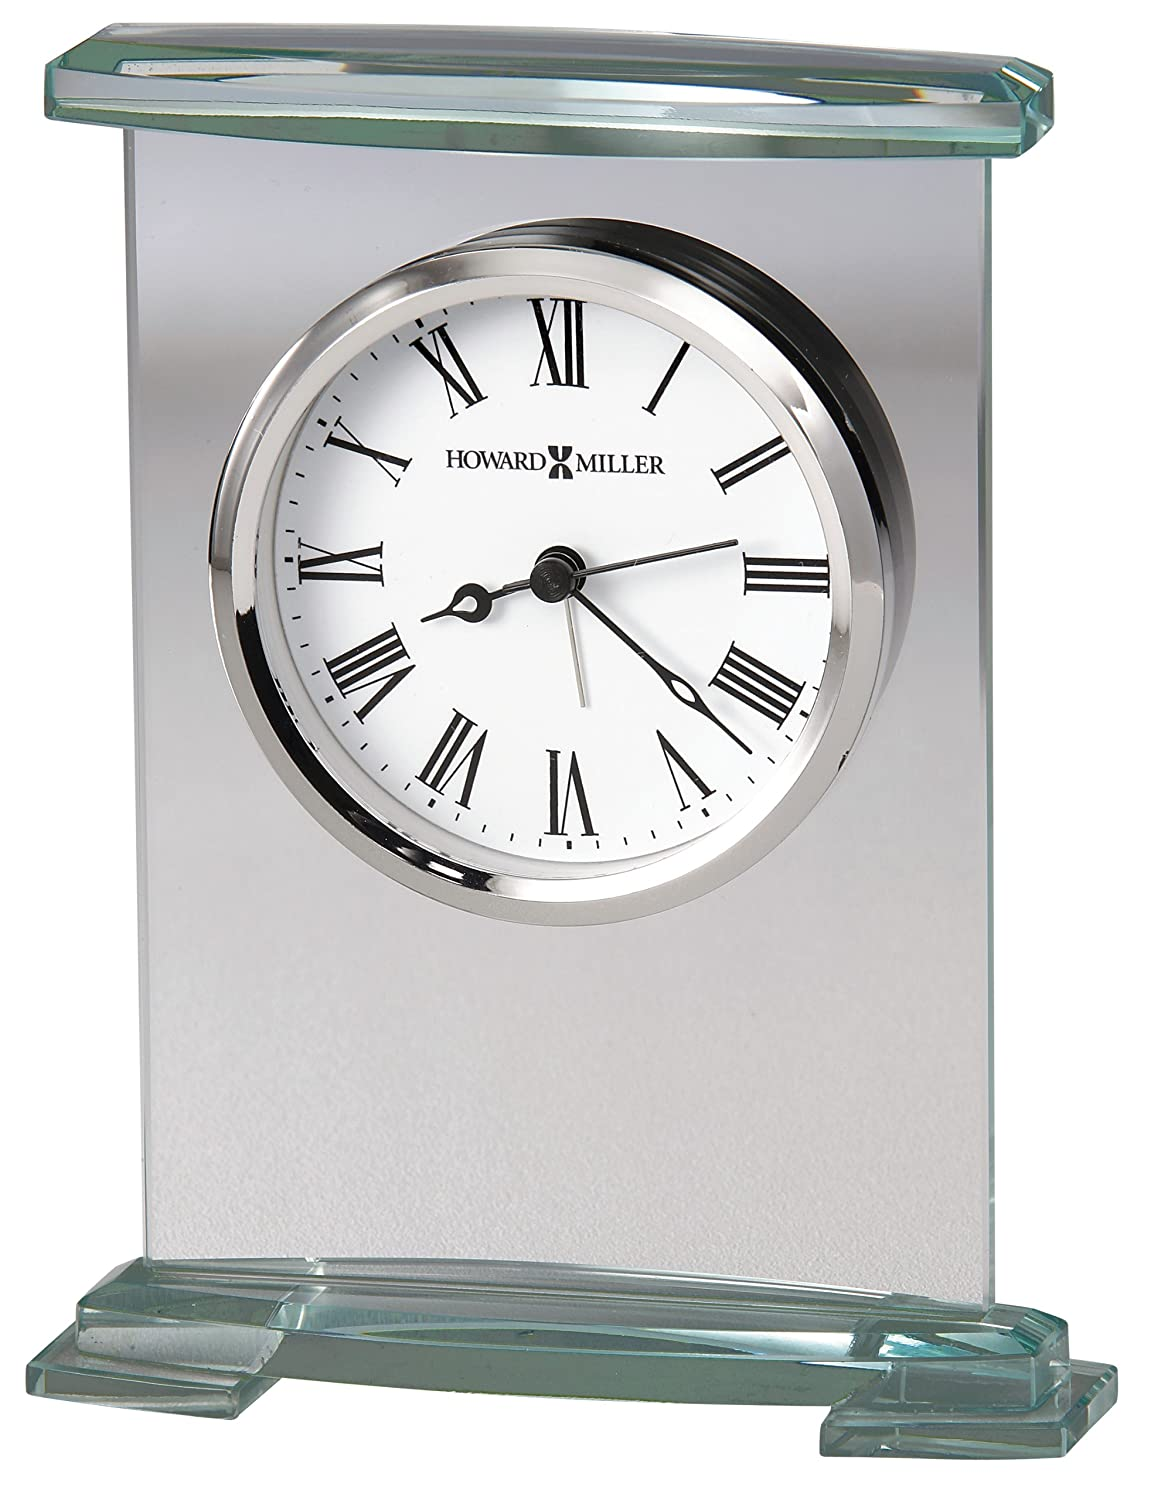 Amazon.com: Howard Miller 645 691 Augustine Table Clock By: Home U0026 Kitchen